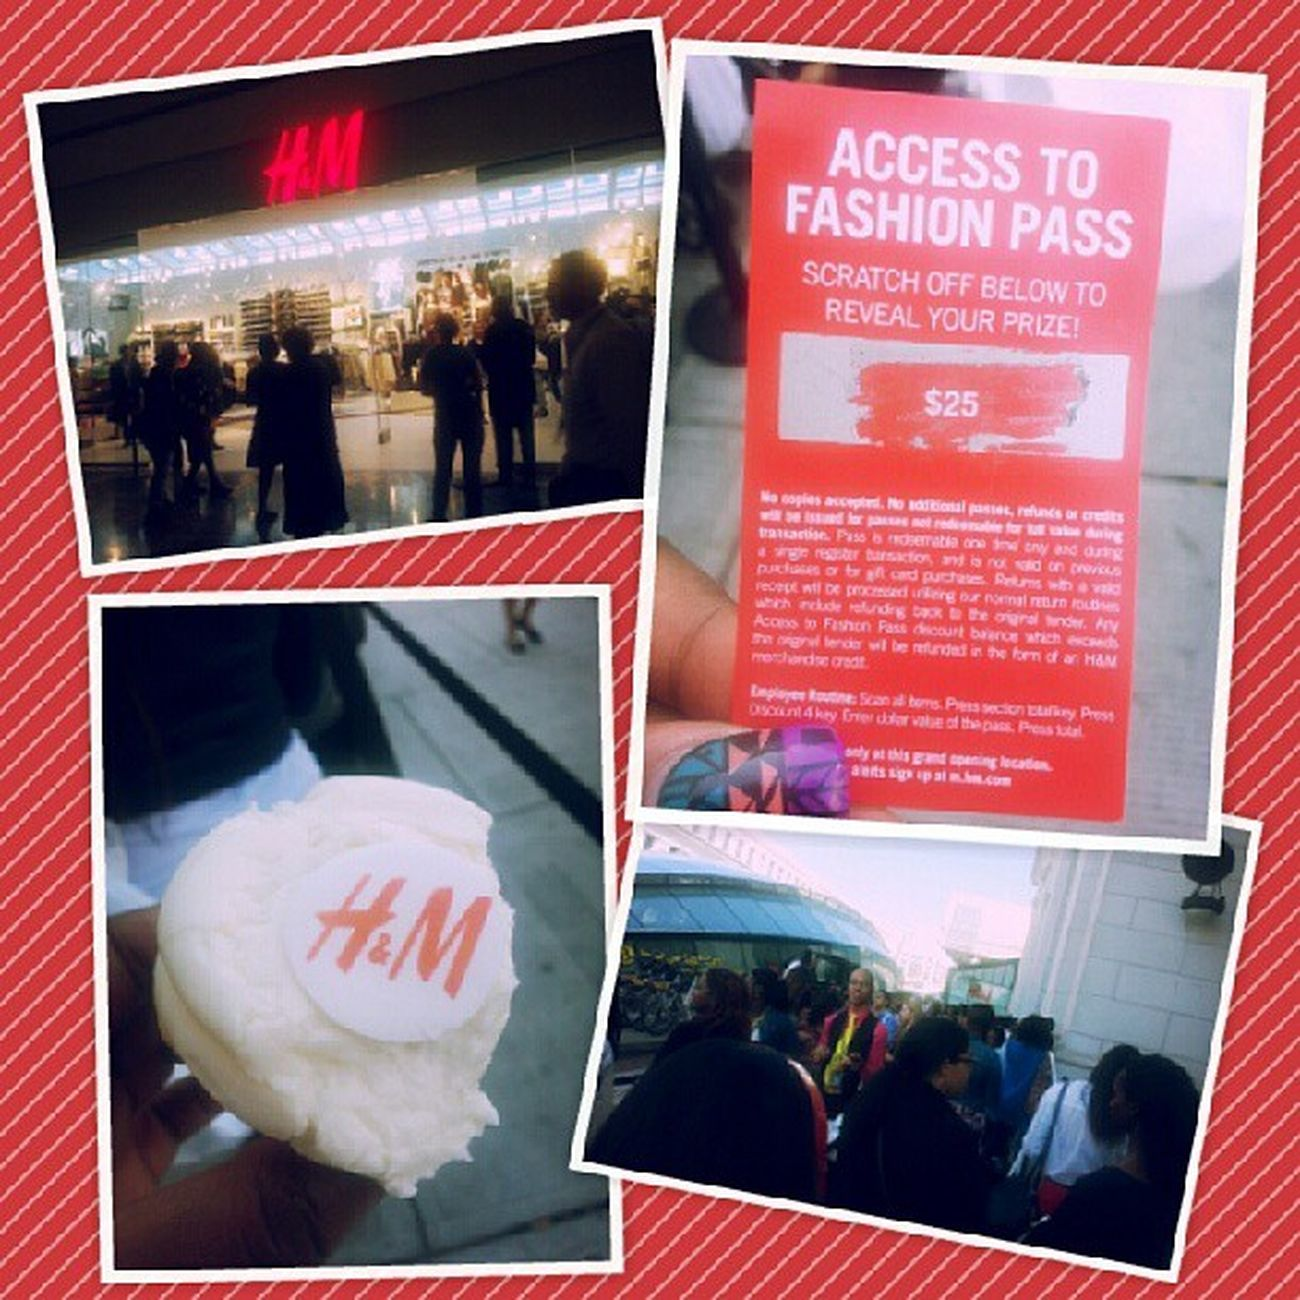 Left the grand opening of H&M at Union Station. I got $25 off, the lowest was $10, the highest was $300 off and the person who got that coveted three hunnid dollah discount was right in front of me in line *sigh* CongratsToHer SomethingIsBetterThanNothing Handm Hm GrandOpening UnionStationDC DC DCchillin